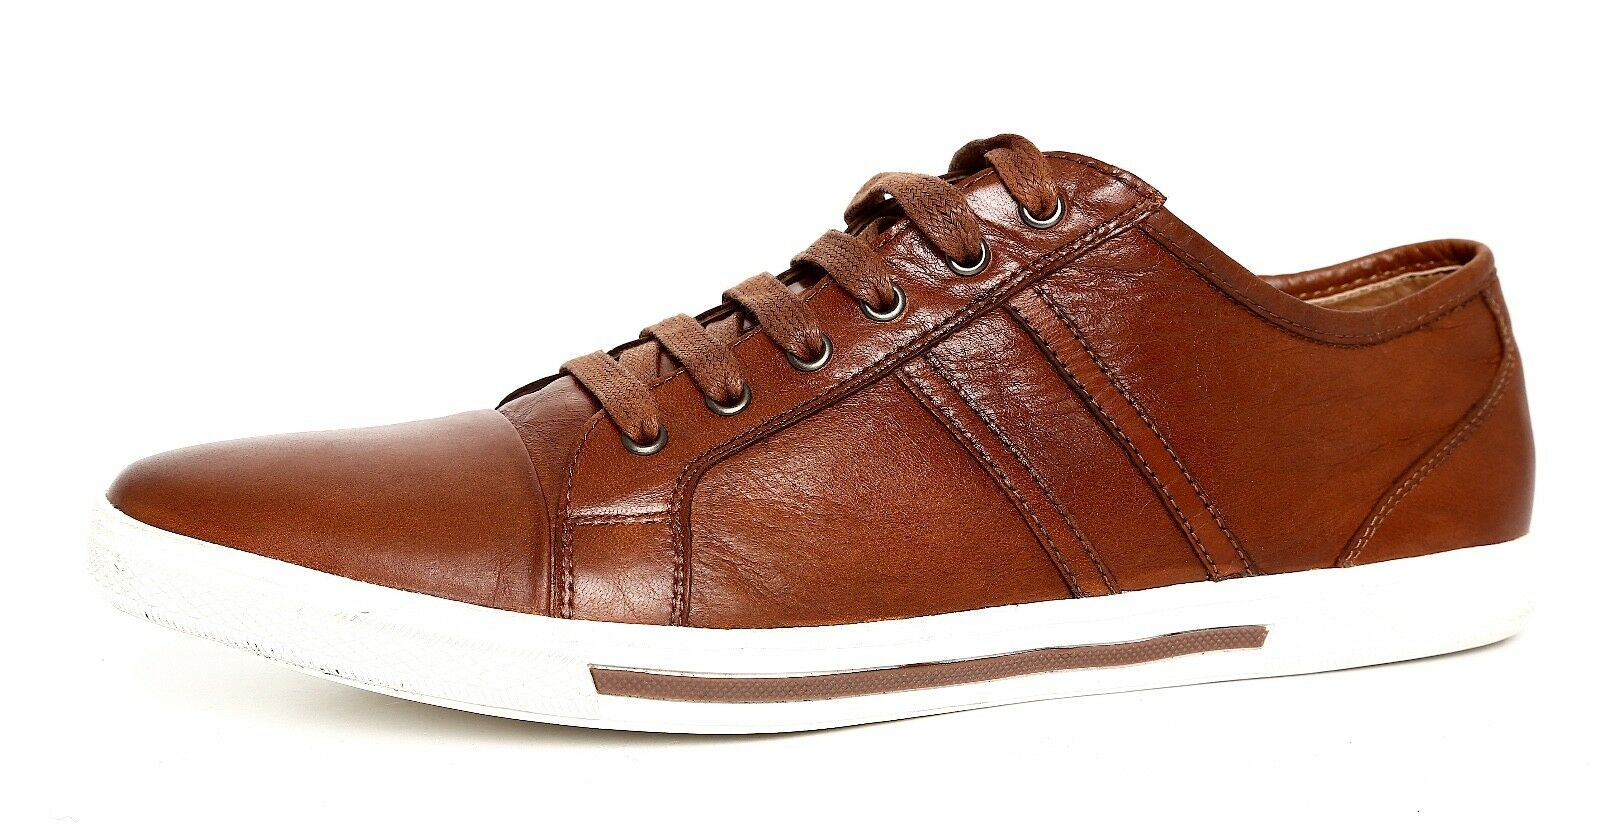 Kenneth Cole New York Get Down 2 It Leather Sneaker Brown Men Sz 10 M 4136